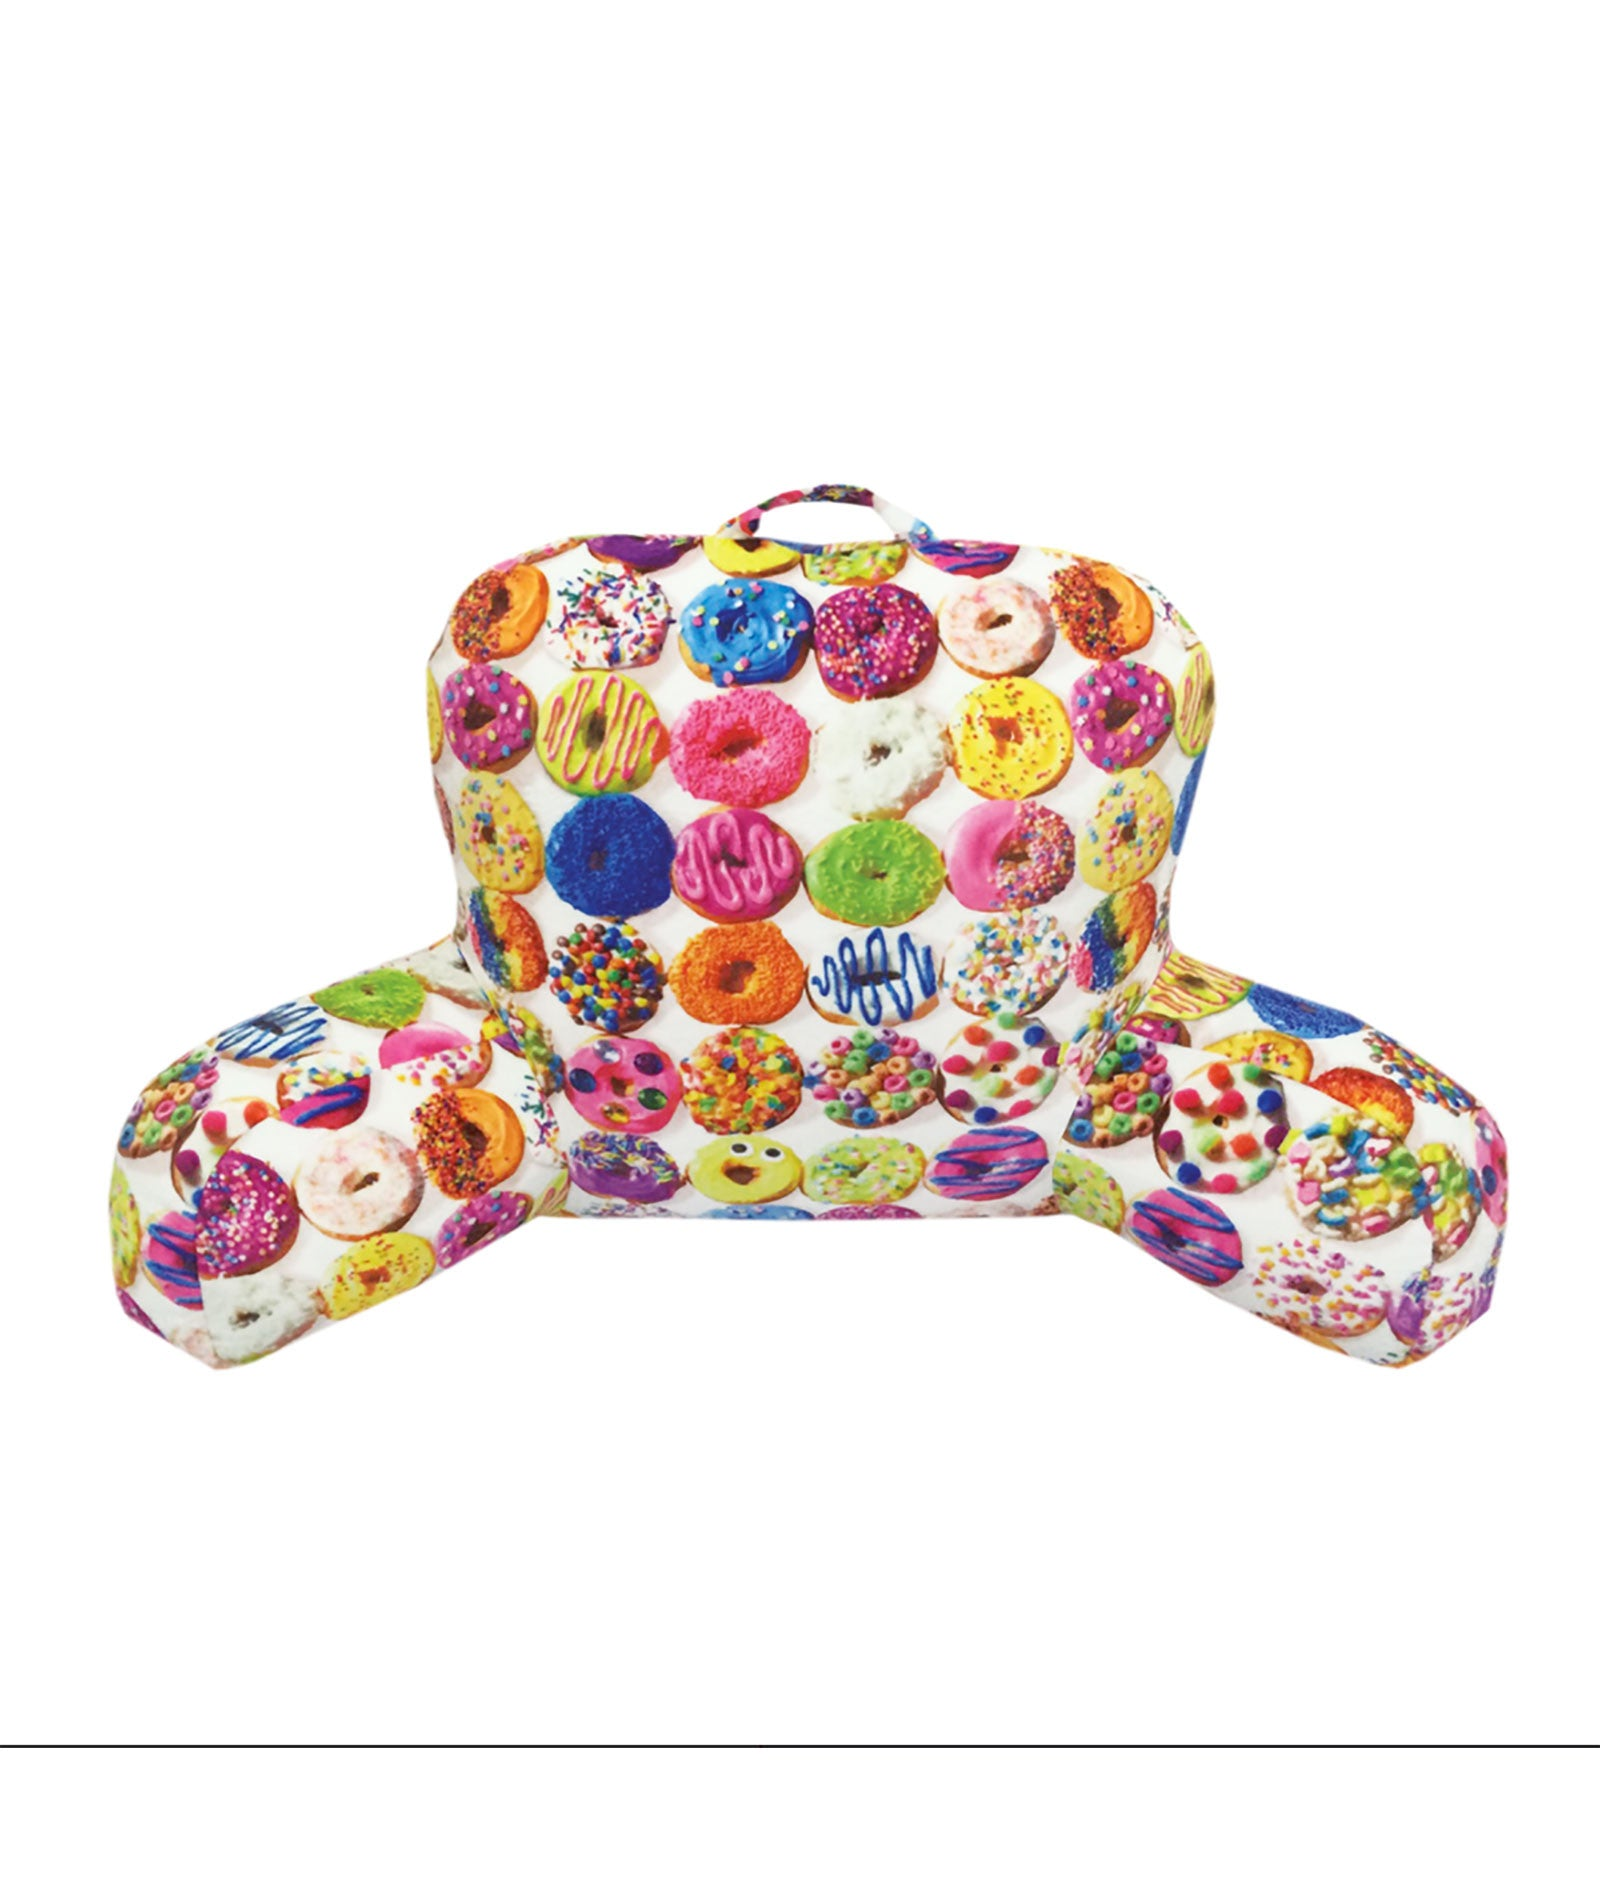 iScream Donut Lounge Pillow